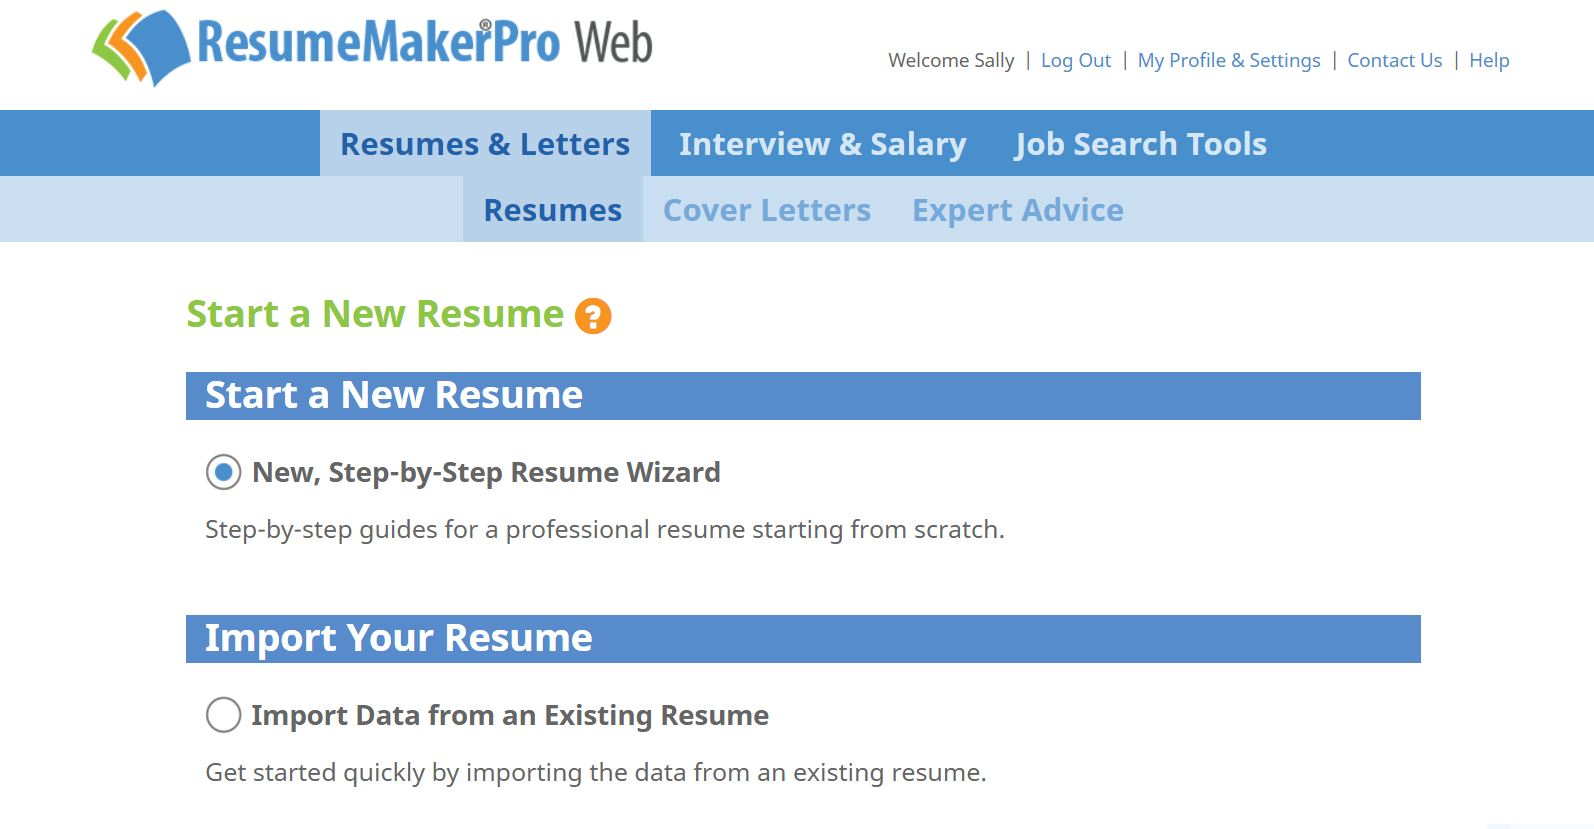 ResumeMakerPro Web - Annual Subscription, Job Search & Business Card Software Screenshot